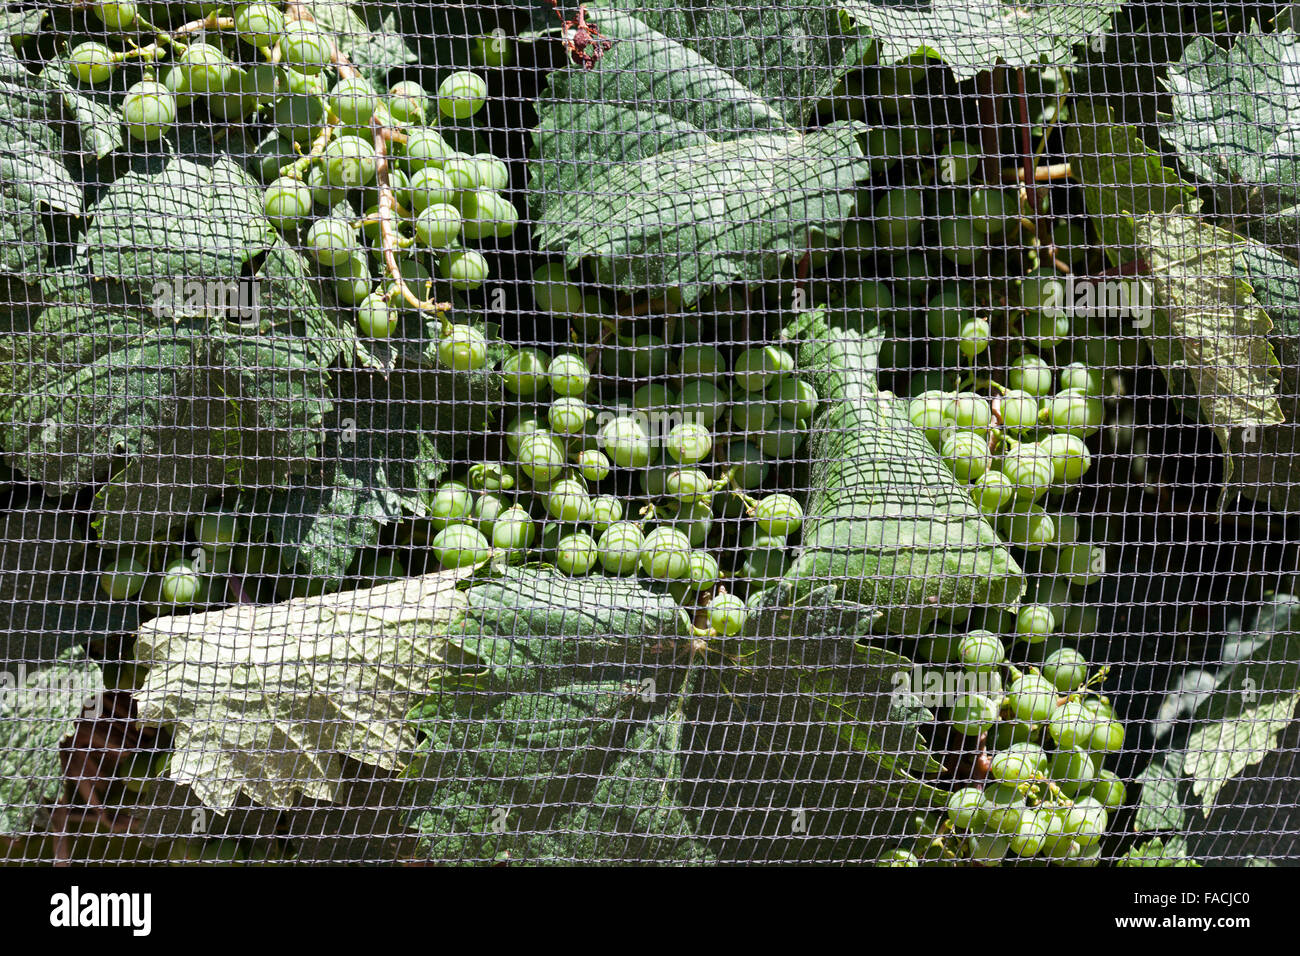 Vines covered with protective netting against hail, Mendoza